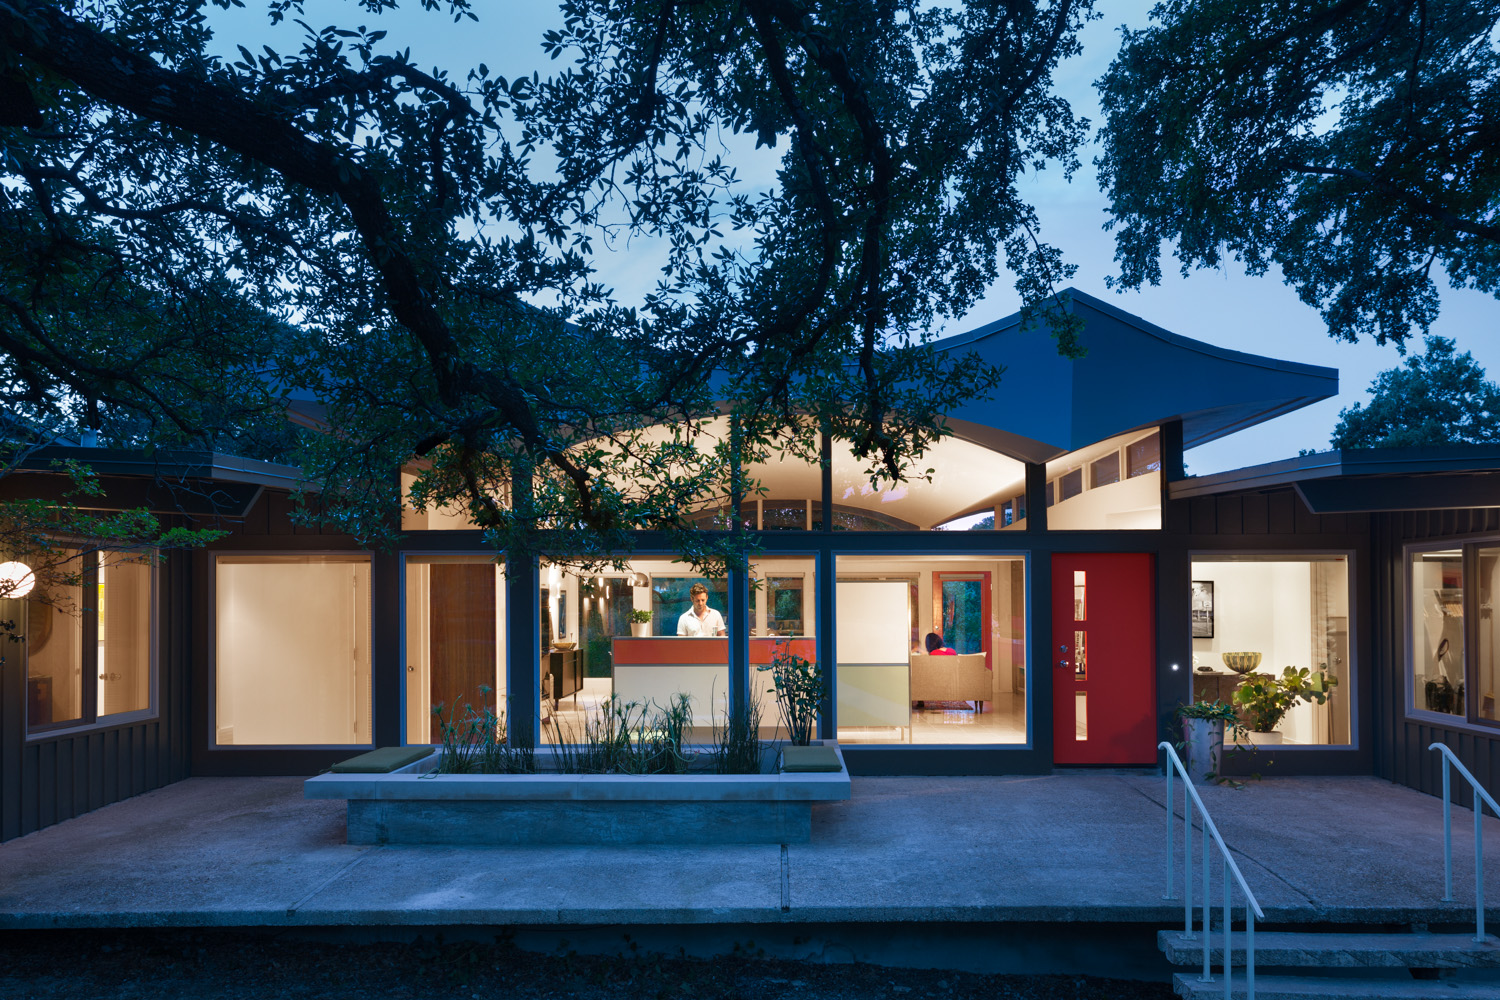 Rick and Cindy Black Architects